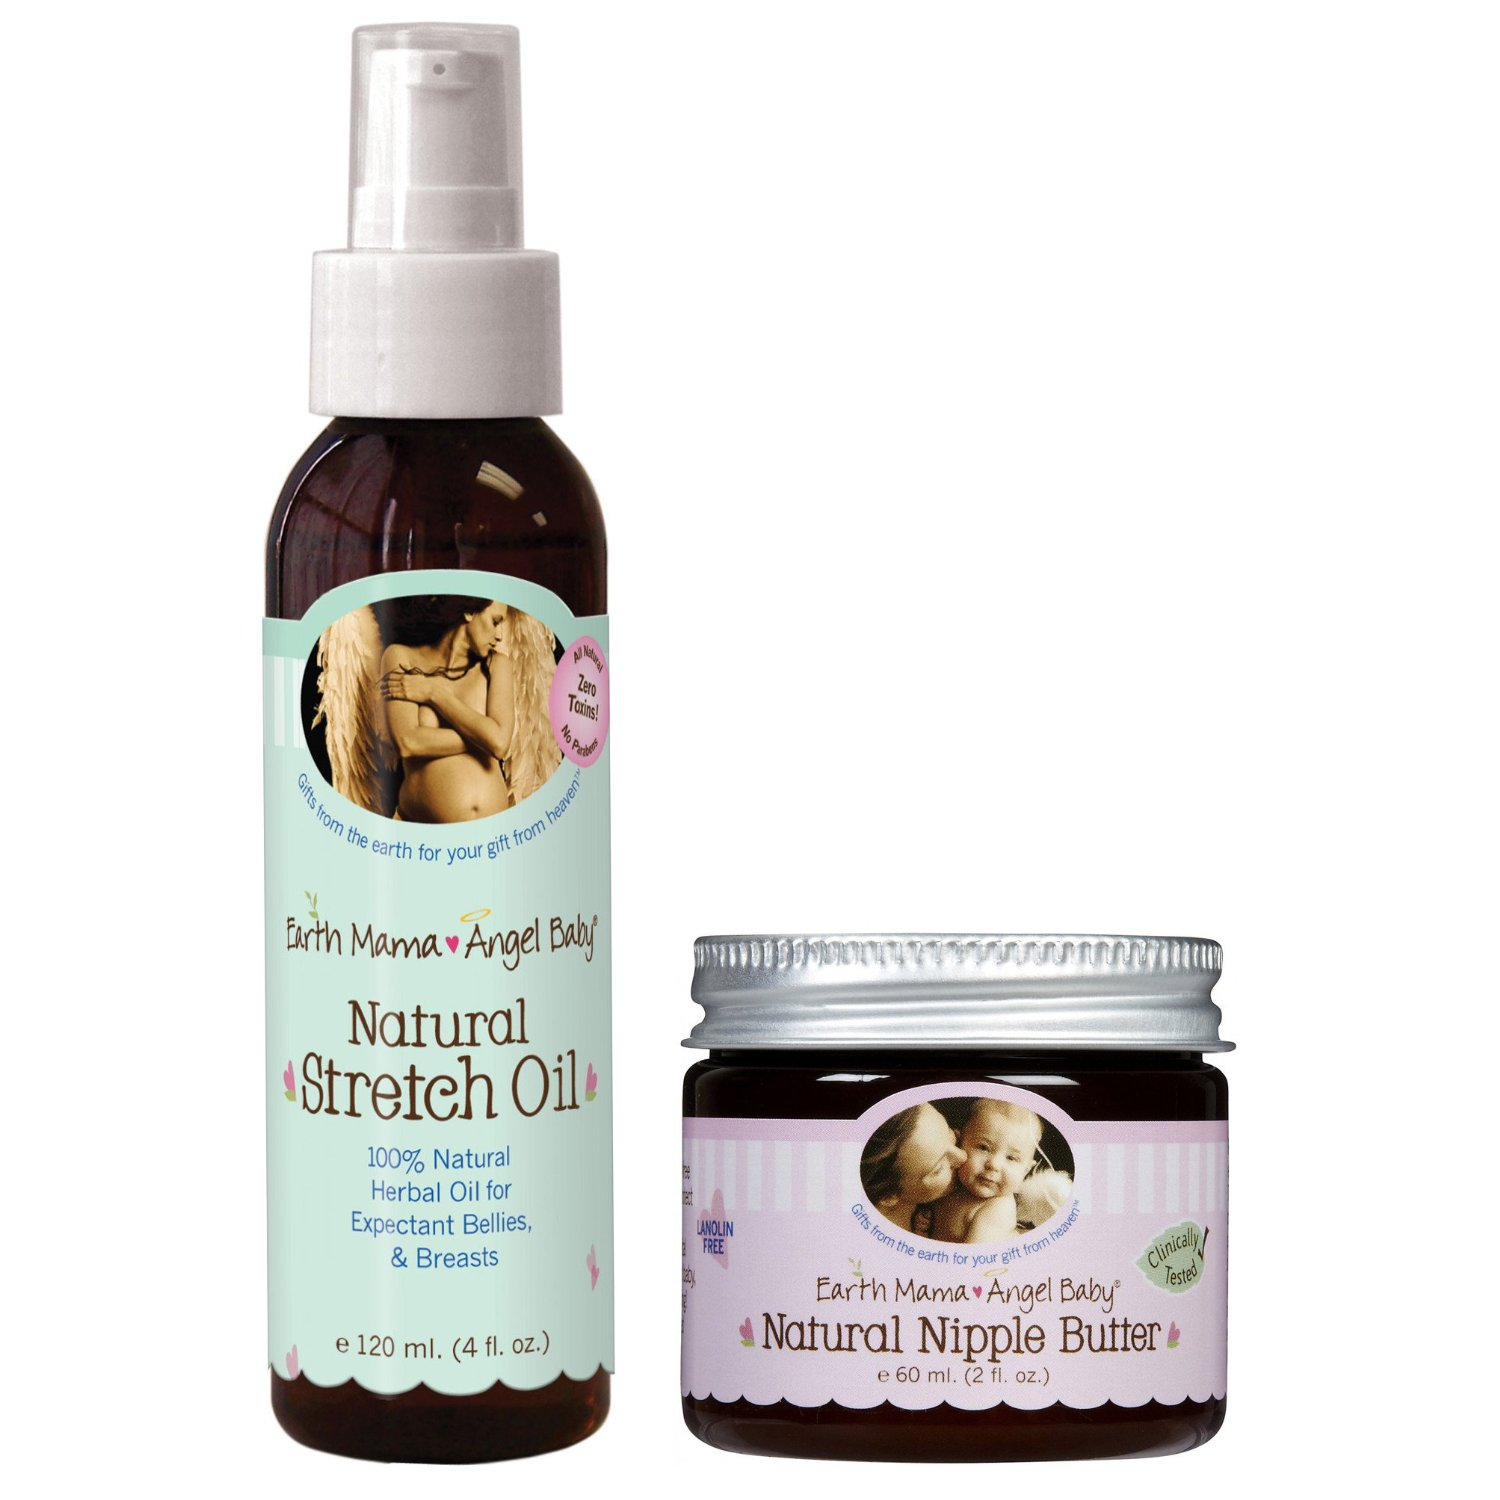 Earth Mama Angel Baby Natural Stretch Oil Pregnancy with Nipple Butter